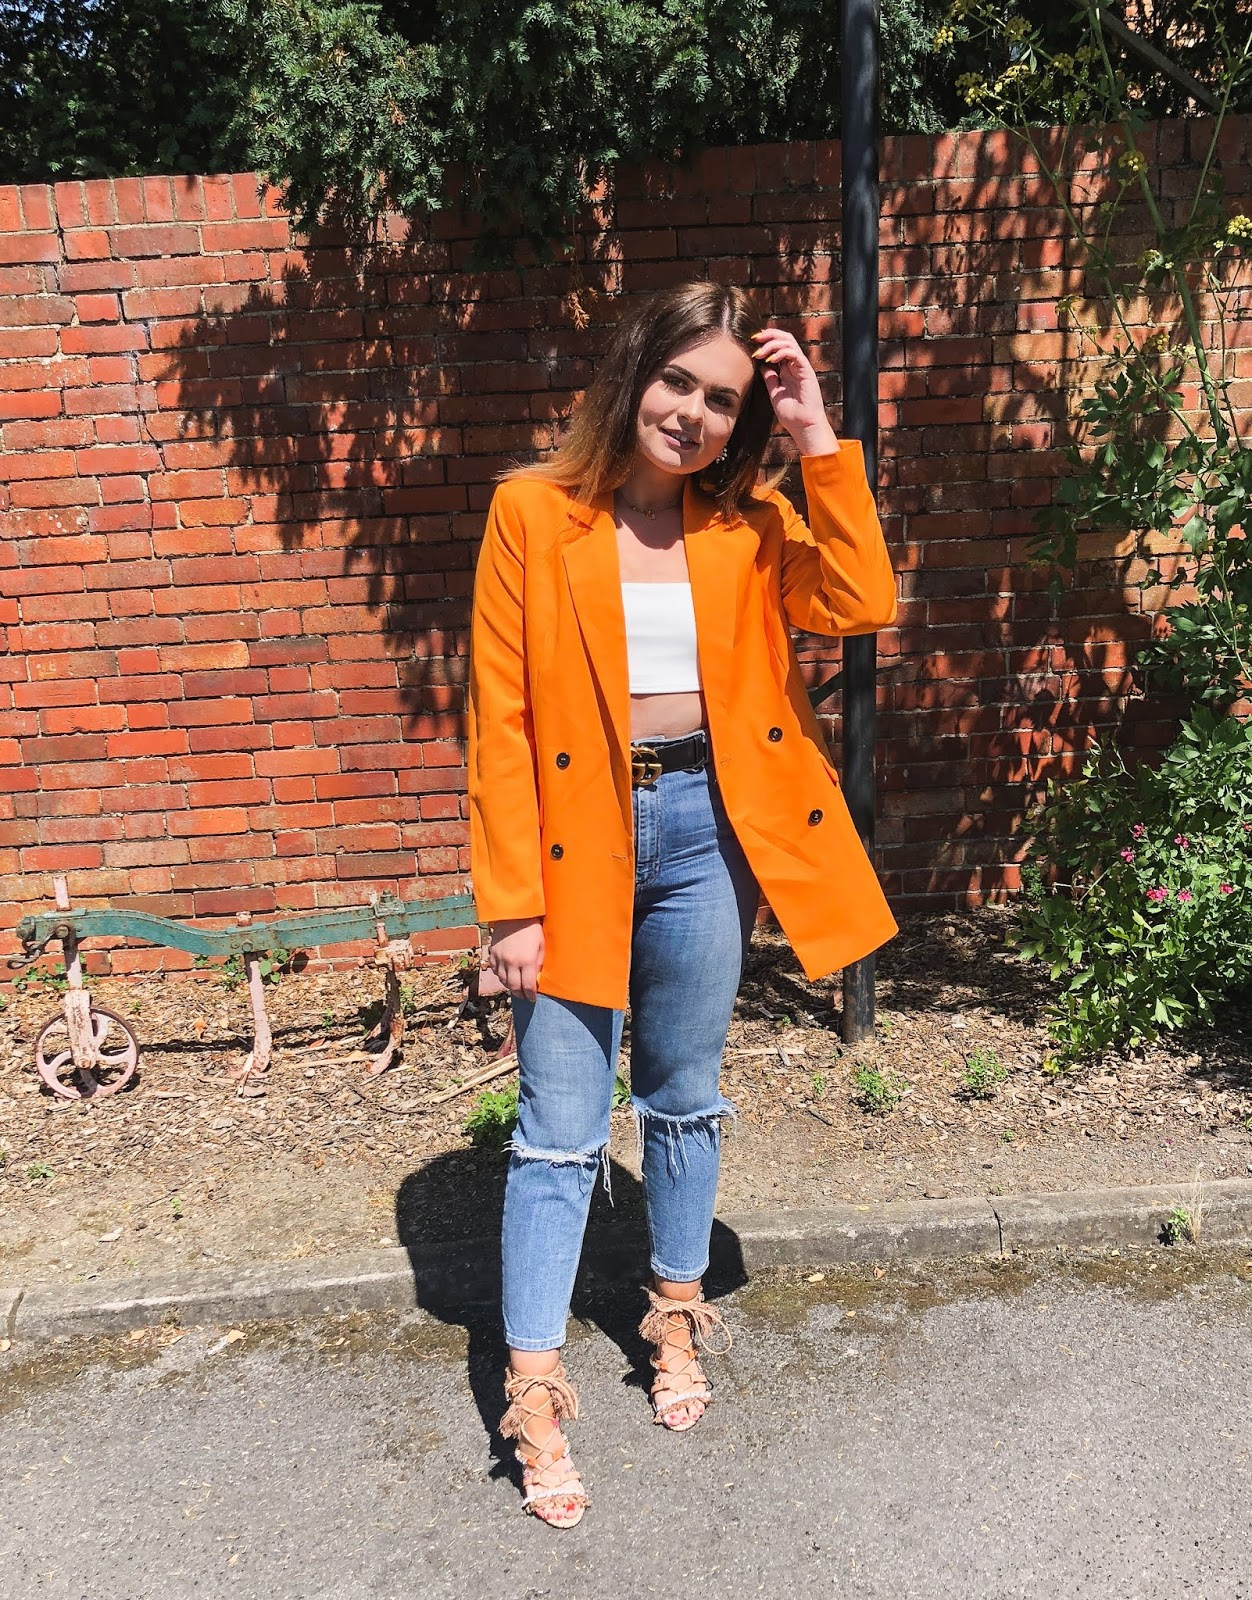 orange missguided blazer, missguided outfit, babesofmissguided, what is blogging, fashion blogger 2018